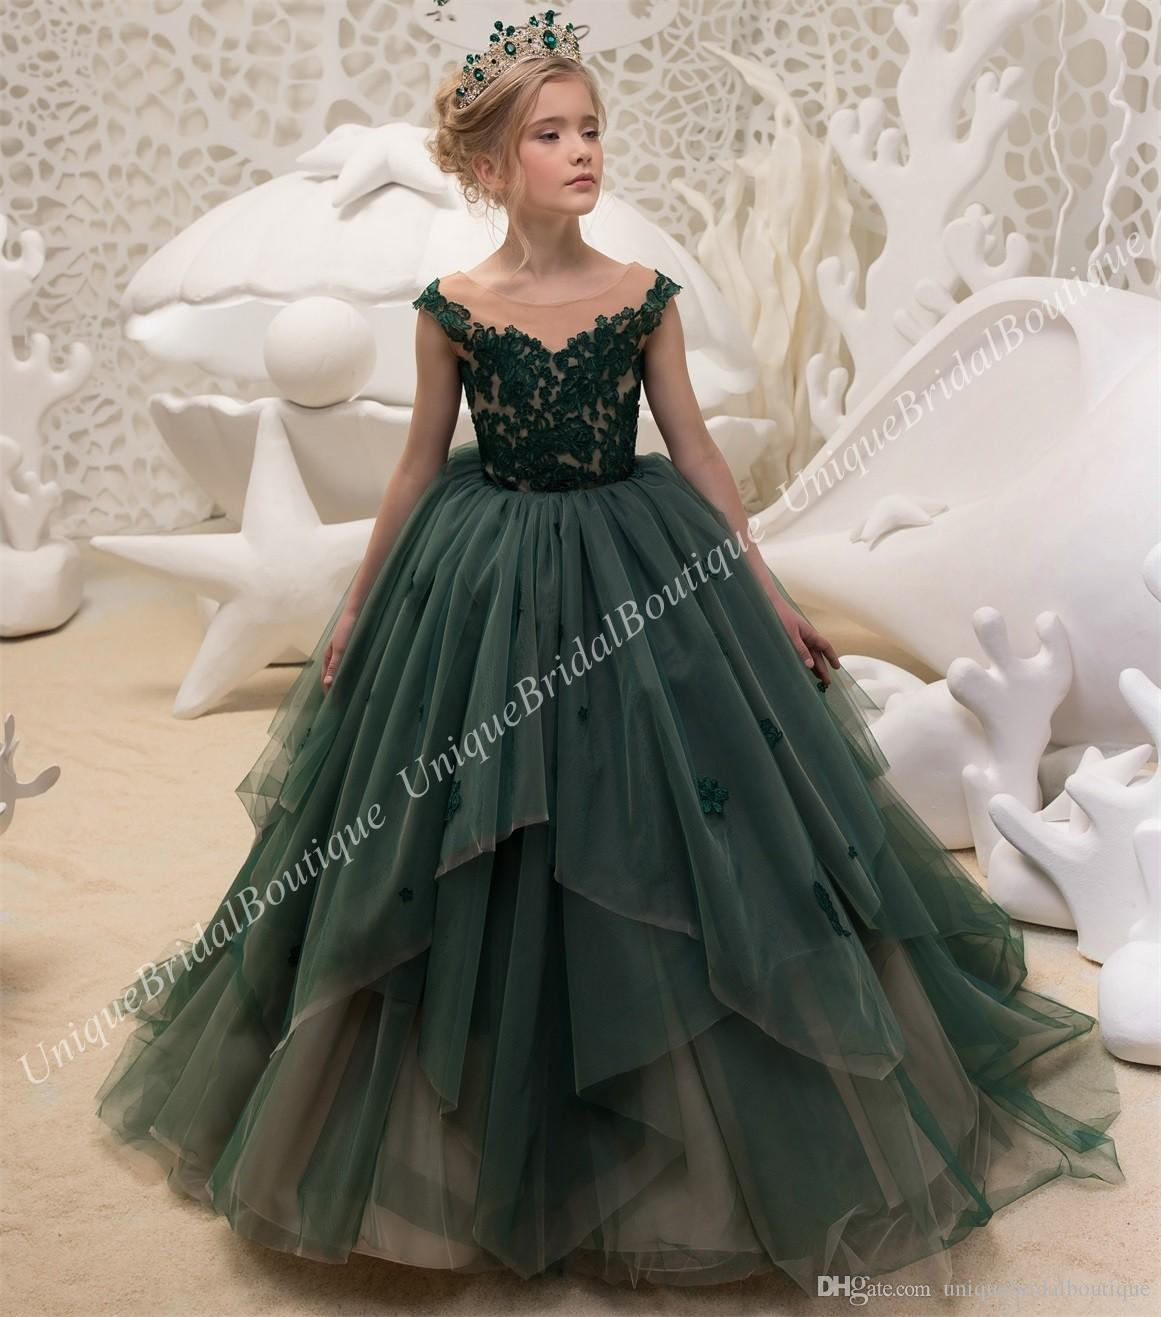 0905db24e8368 Emerald Green Flower Girl Dresses 2018 Birthday Wedding Party Bridesmaid  Holiday Lace Little Girls Formal Wear Dress Custom Made Purple Flower Girl  Dresses ...